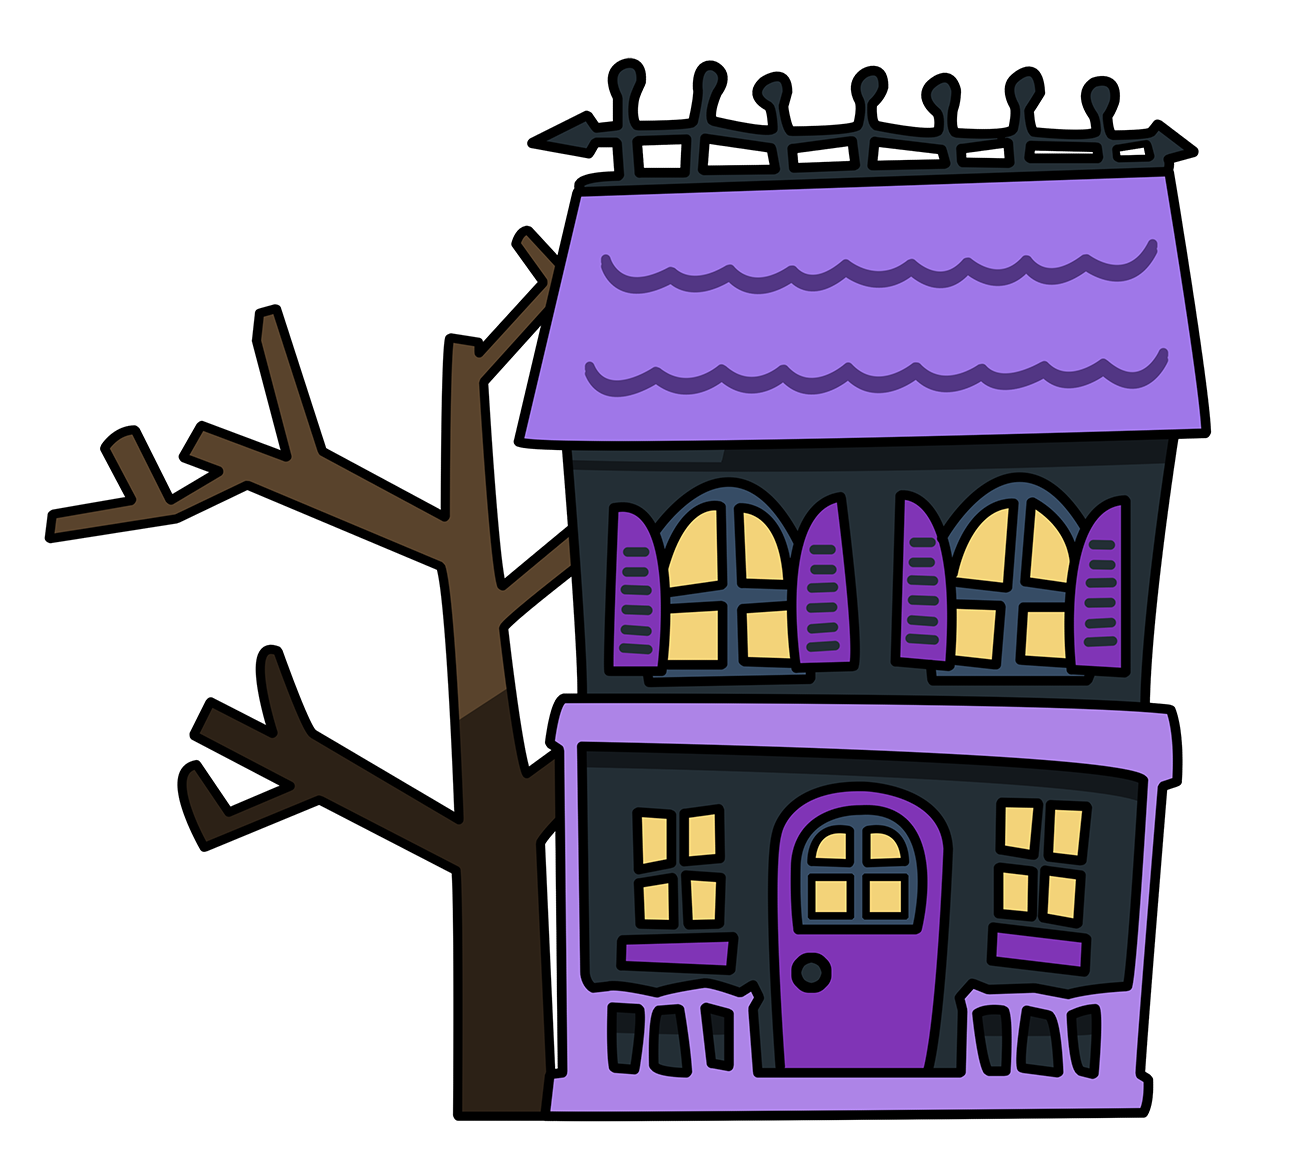 House architectural styles clipart clip art transparent stock Inside House Clipart. Download Inside House Clipart - Deltasport.co clip art transparent stock